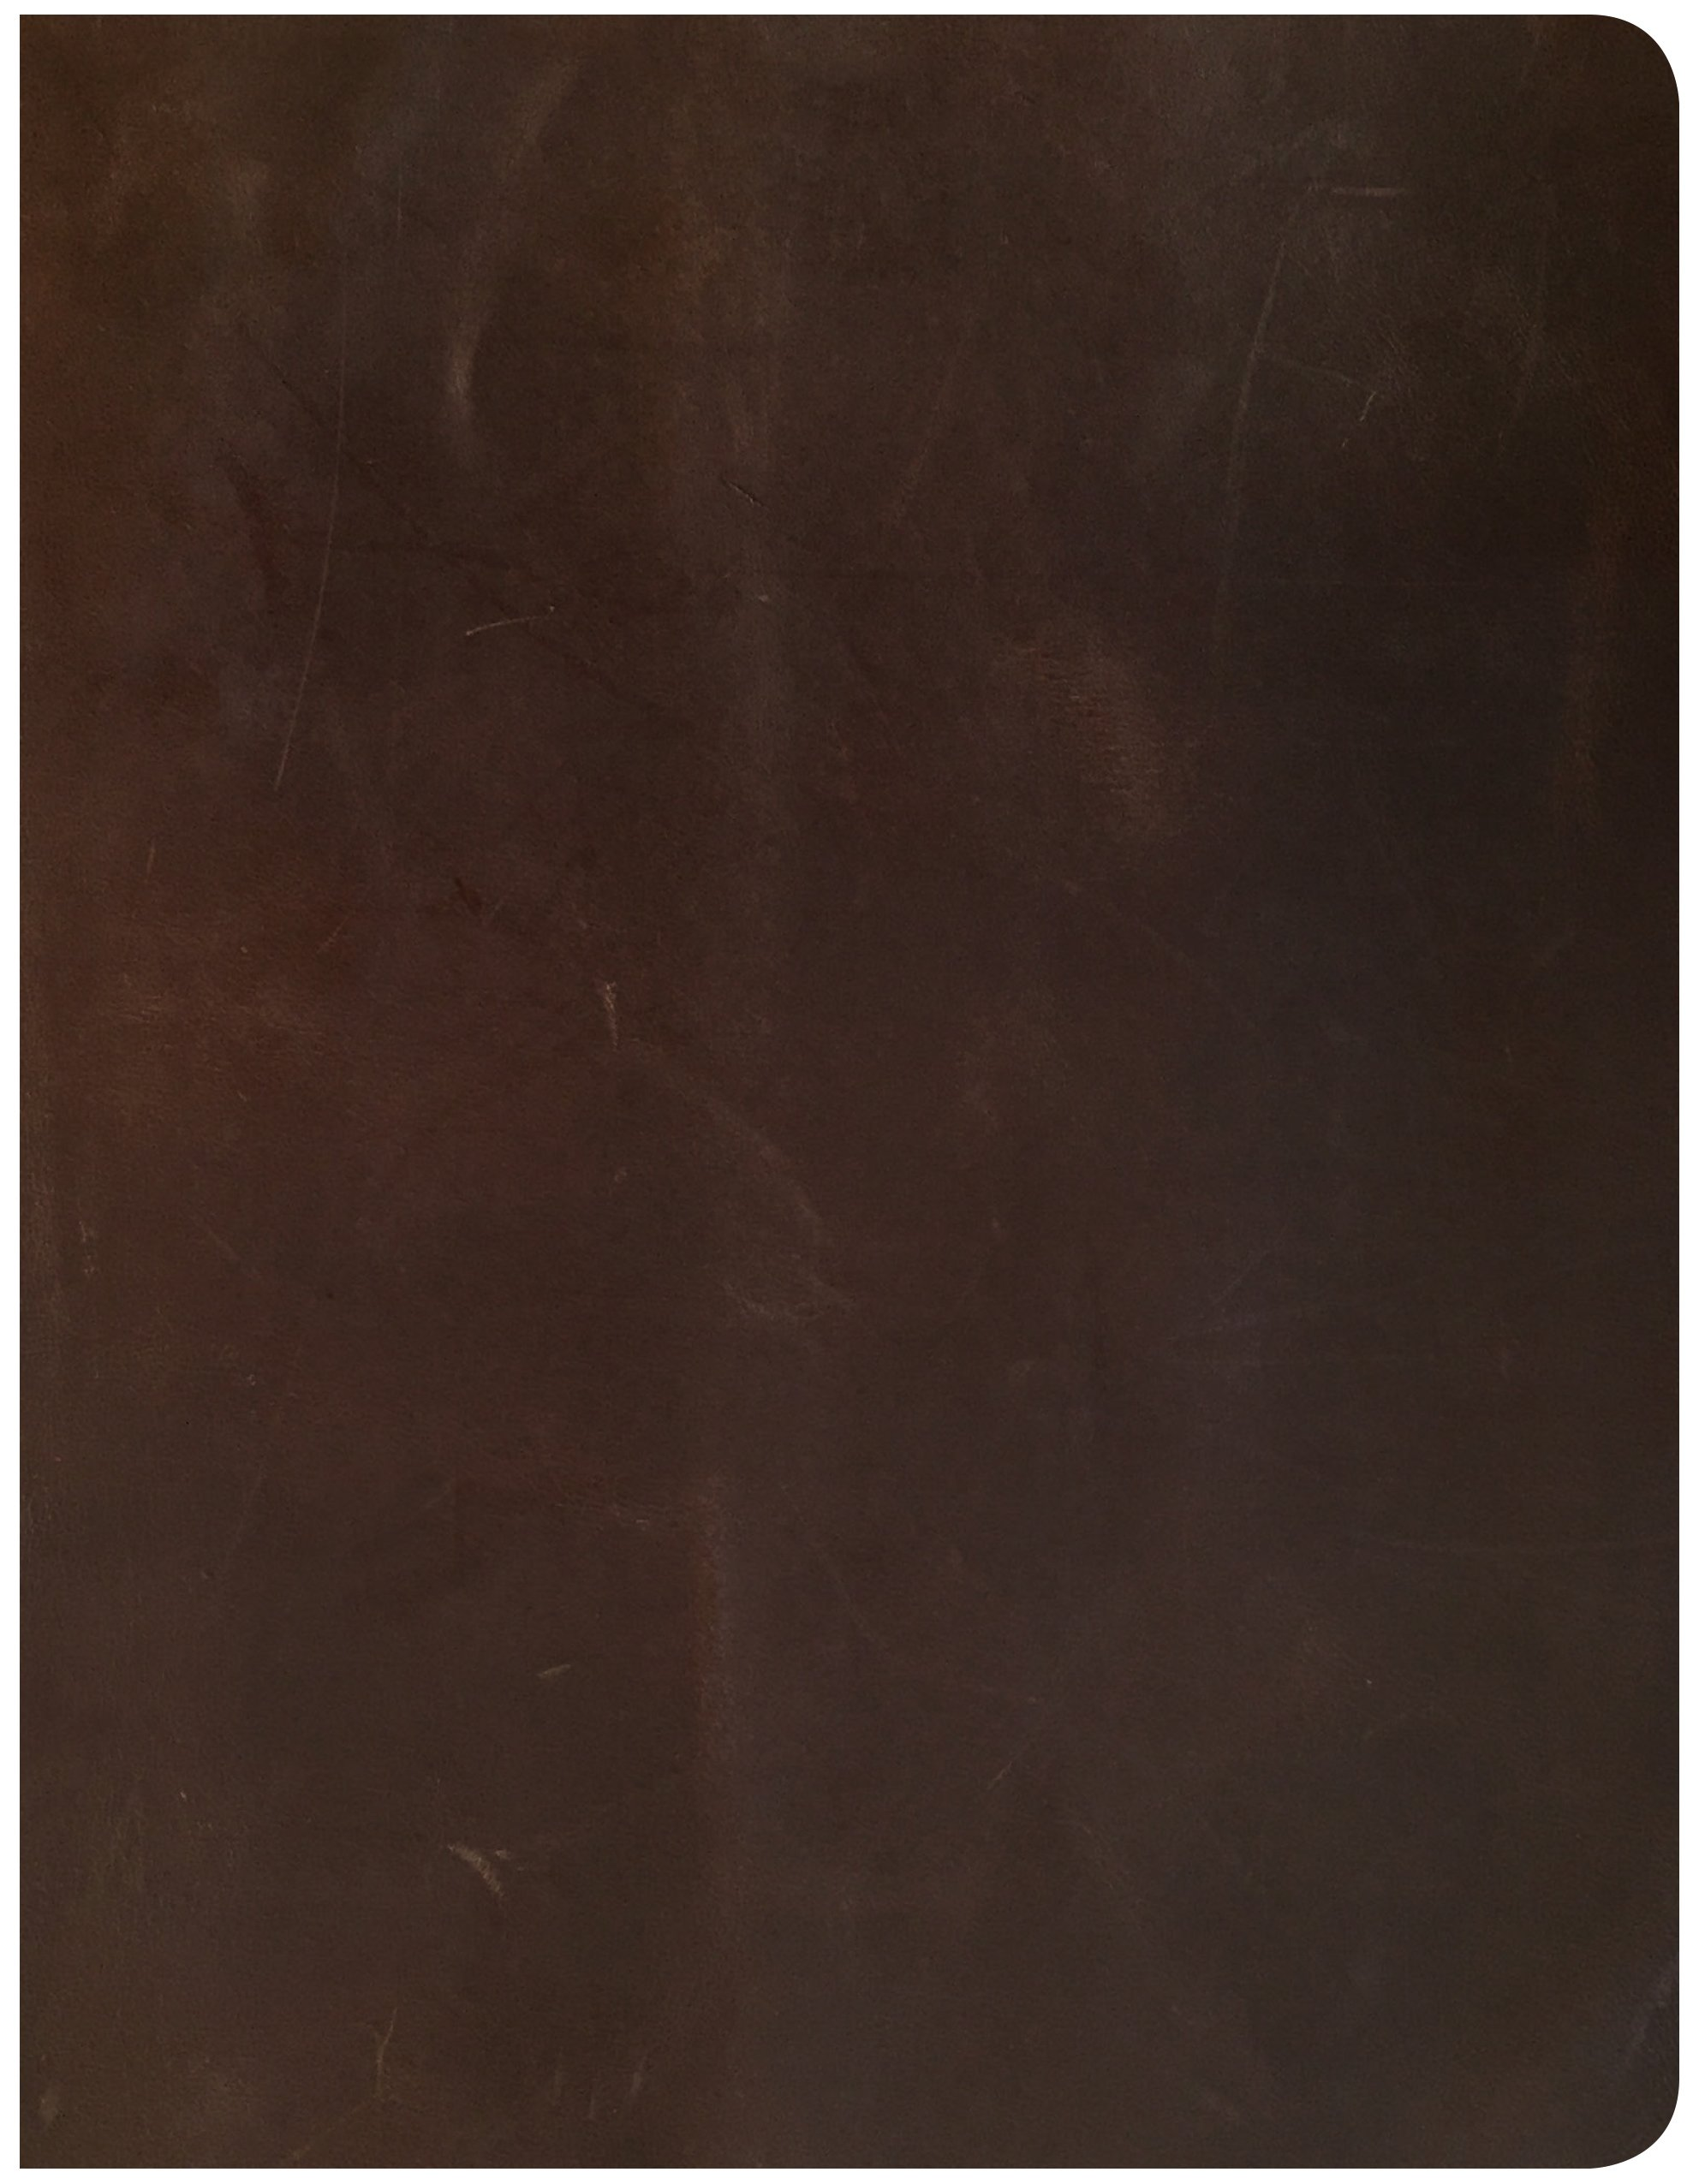 Download CSB Notetaking Bible, Brown Genuine Leather Over Board PDF